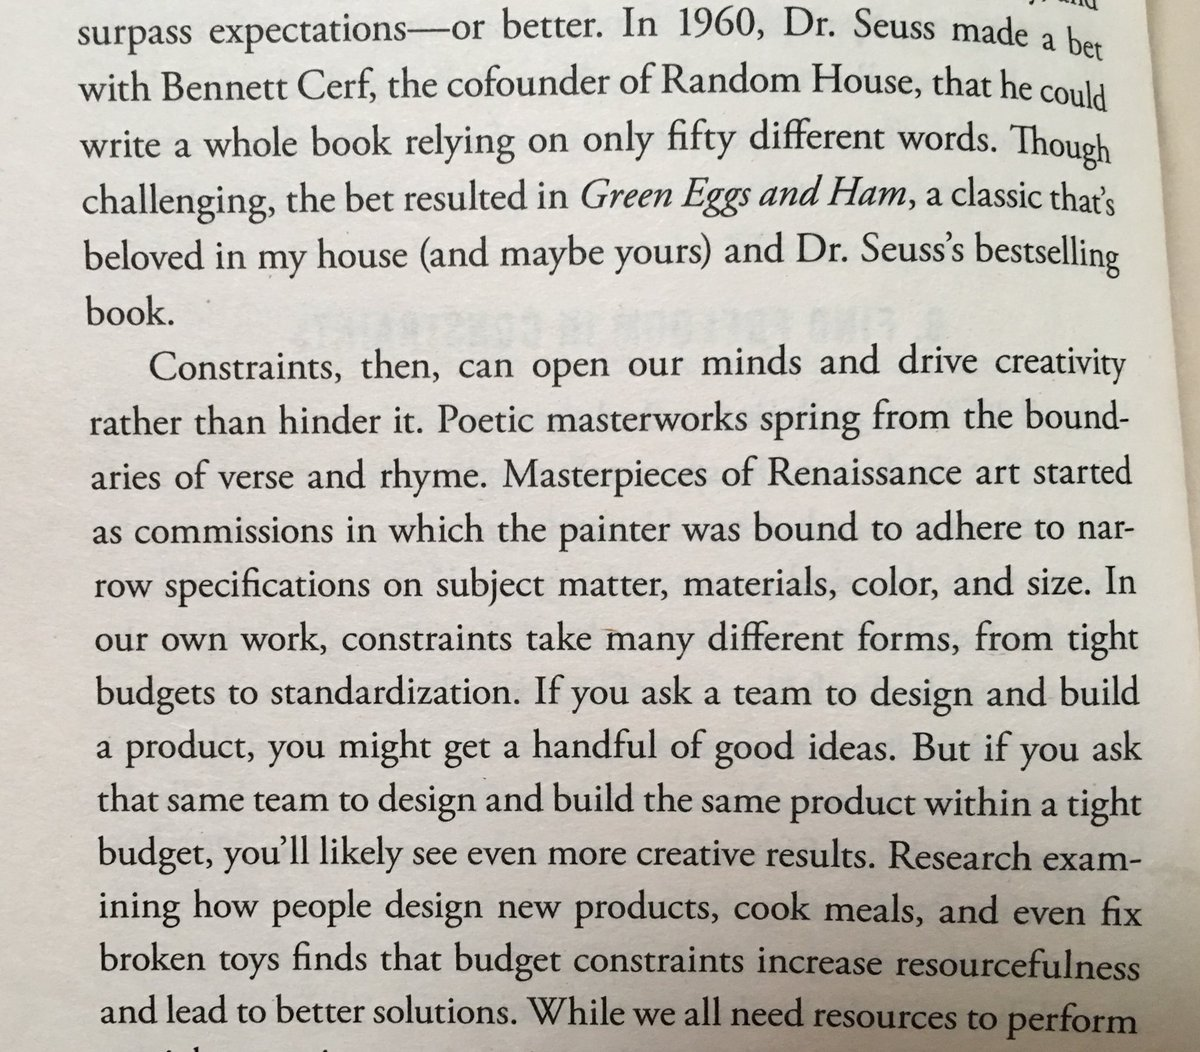 💎 On the power of constraints to drive creativity (writing Green Eggs and Ham)